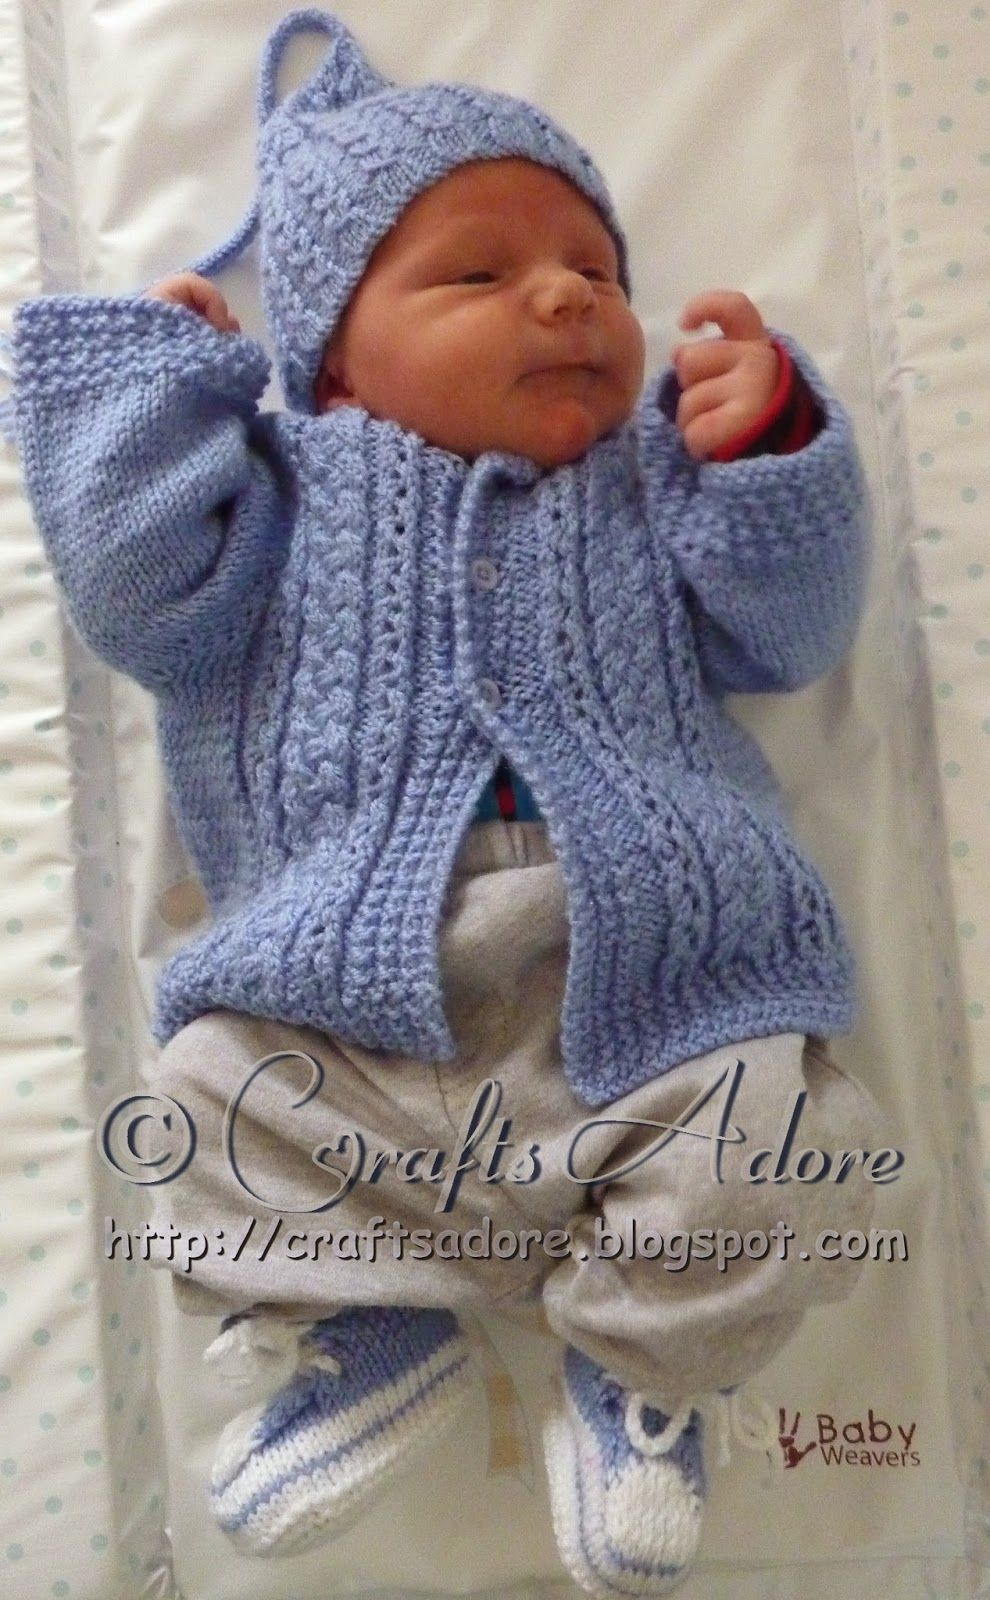 Free Sweater Patterns To Knit Best Knitting Patterns For Ba Clothes Accessories Little Boy